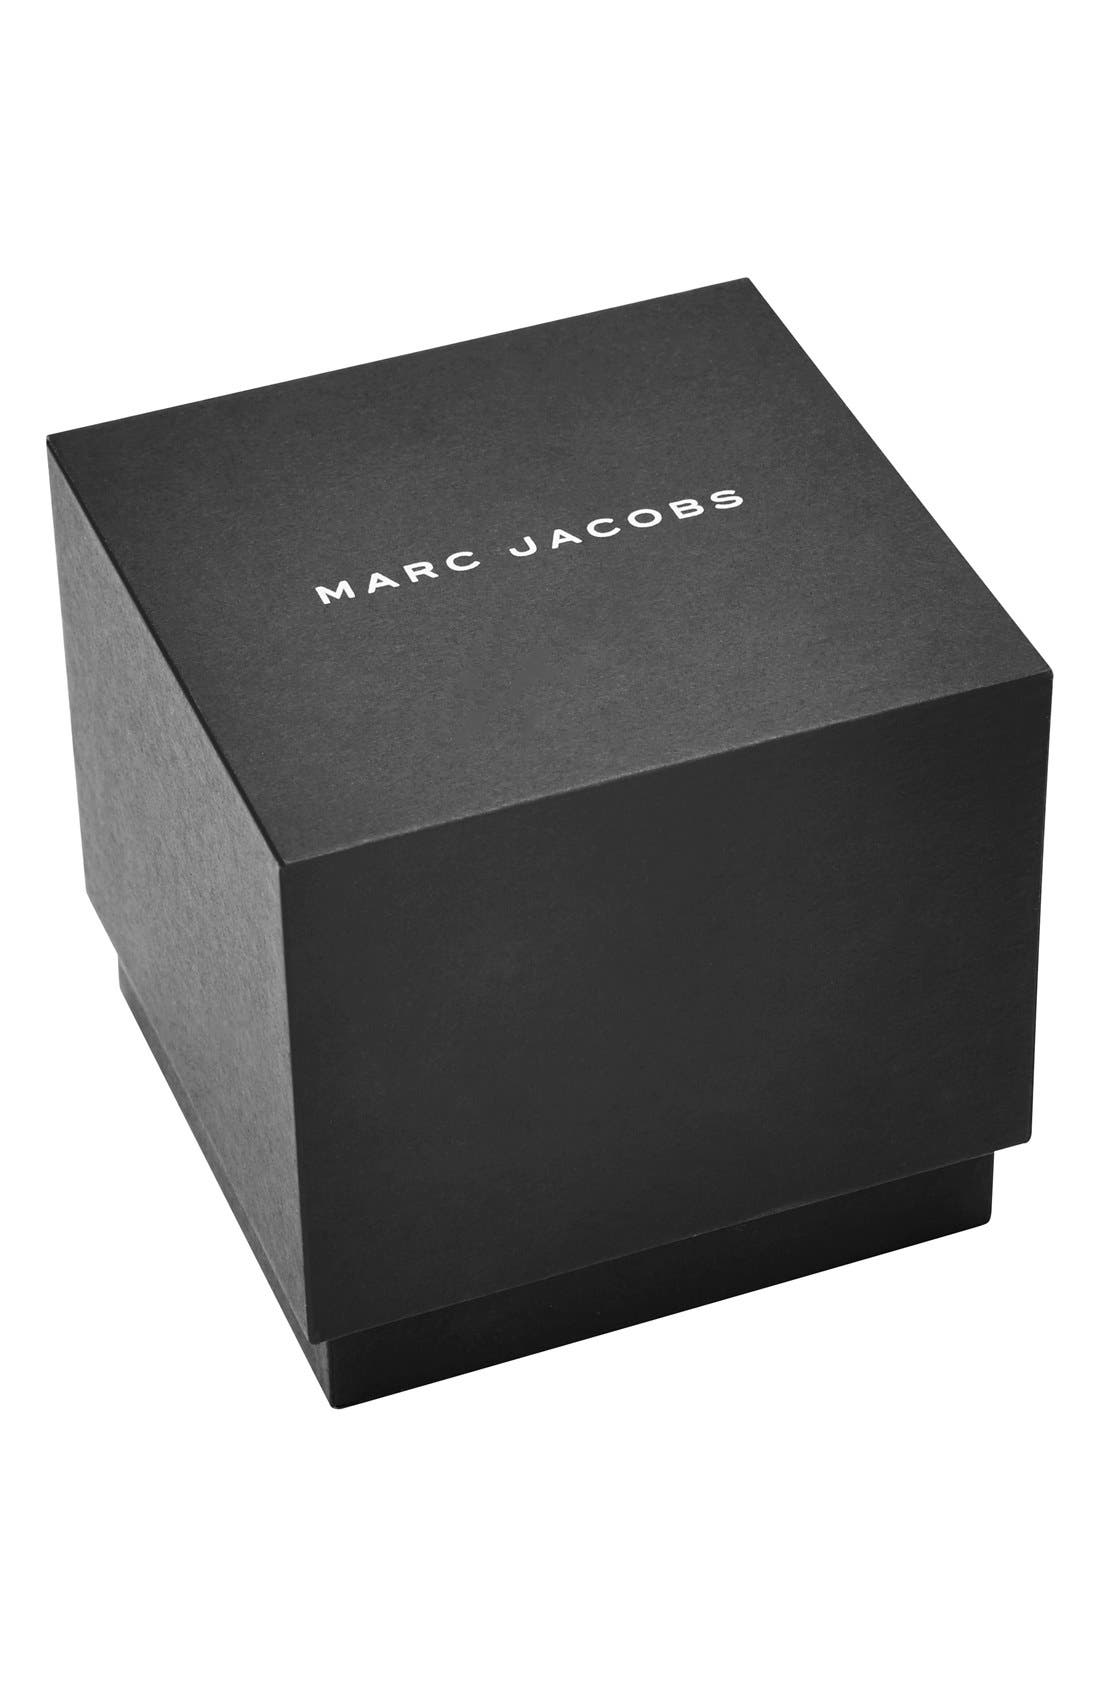 MARC JACOBS,                             'Dotty' Leather Strap Watch, 34mm,                             Alternate thumbnail 4, color,                             001